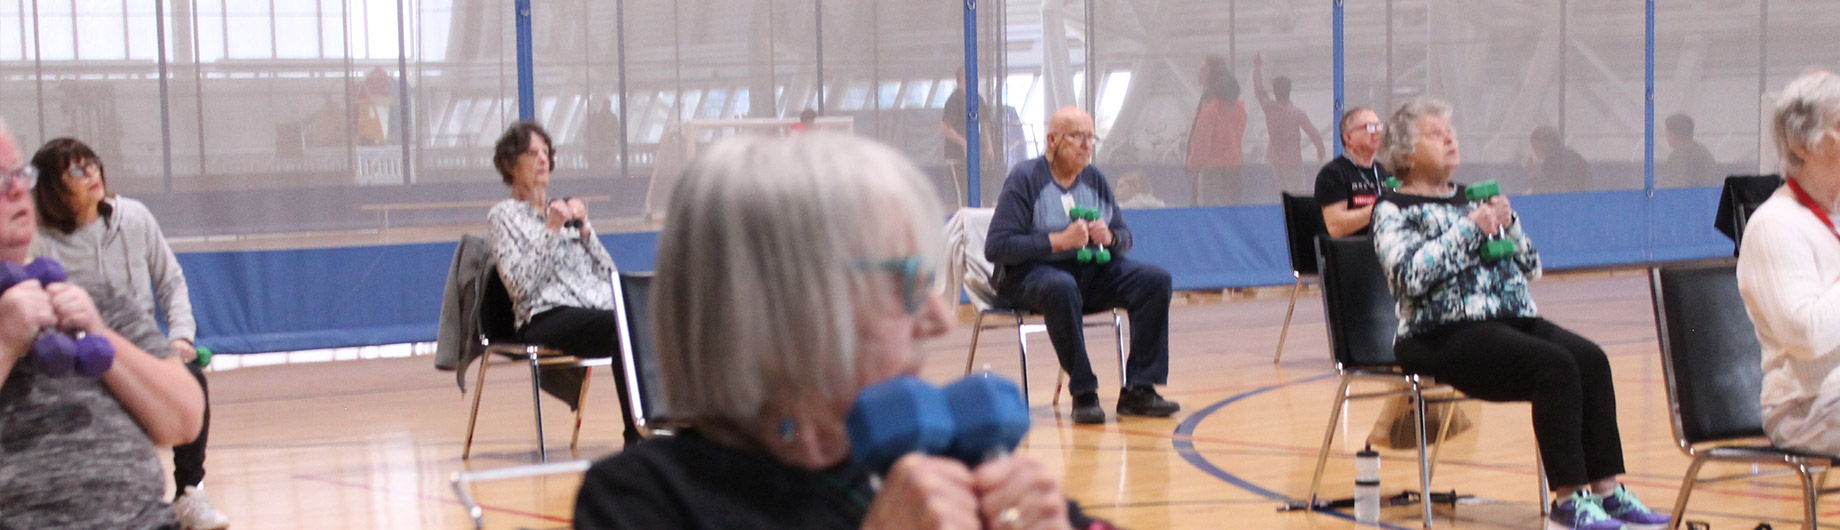 Various aged members exercising with dumbbells at Abilities Centre